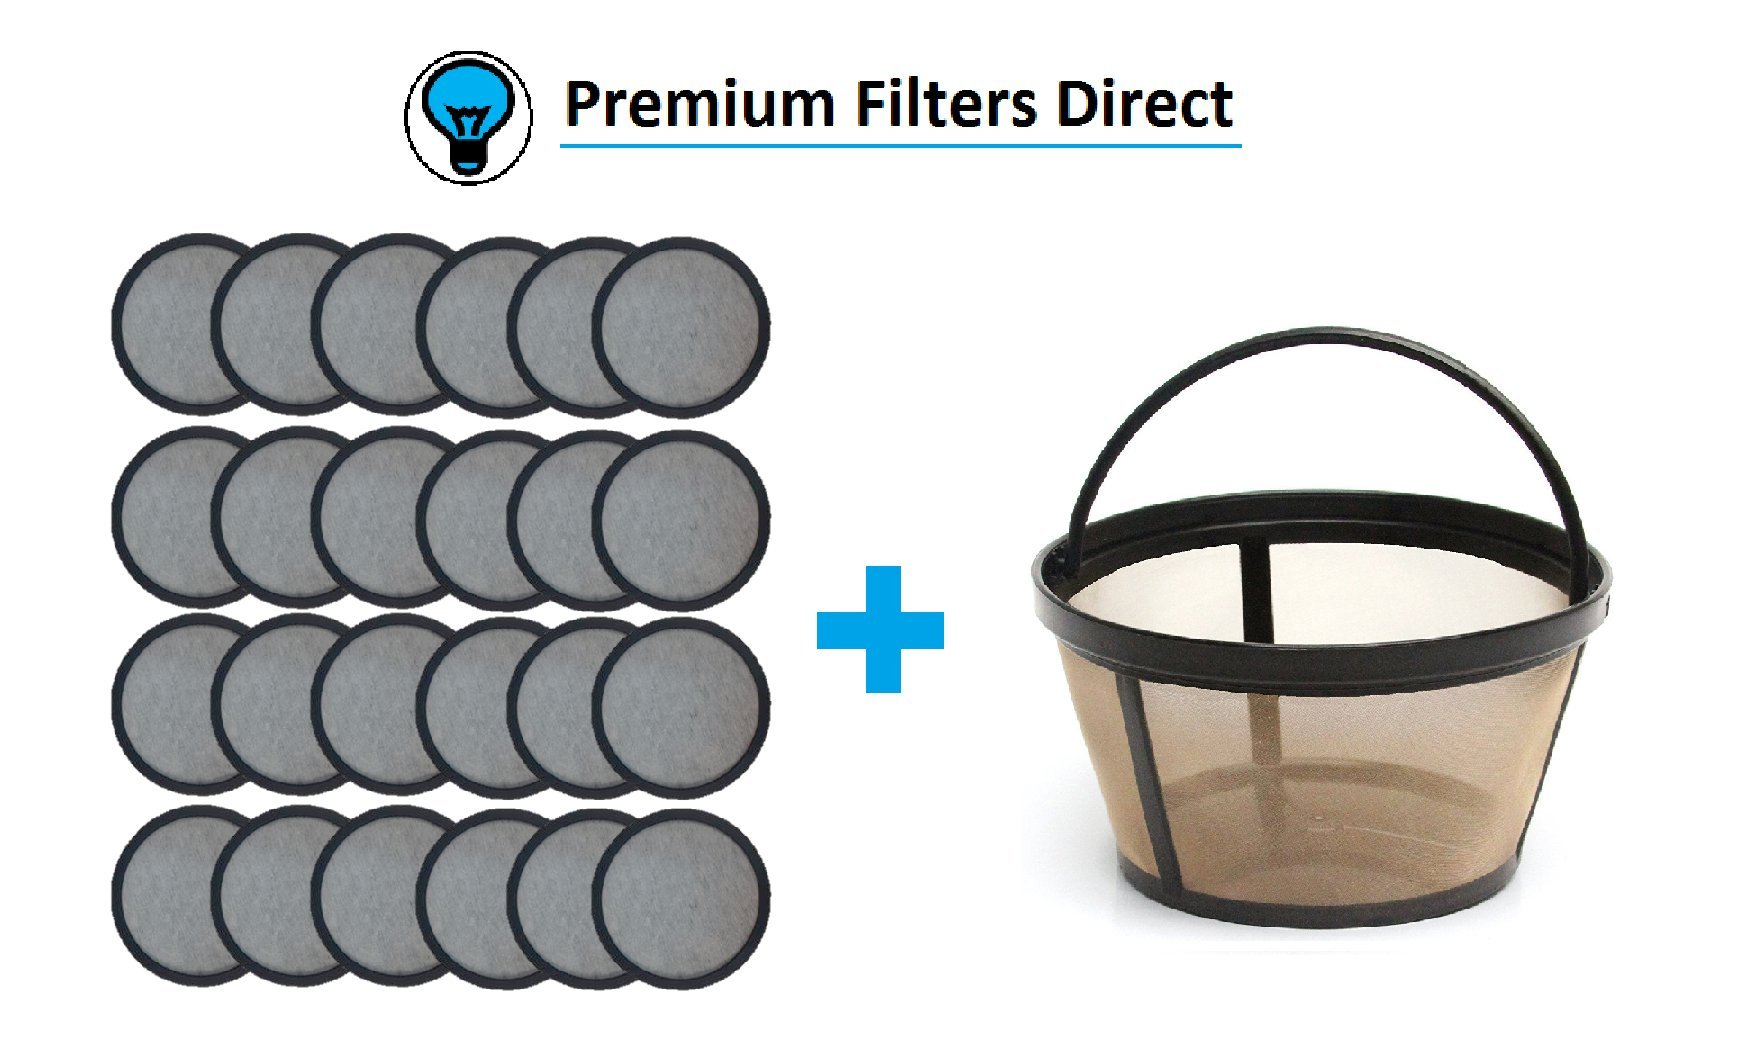 Premium Replacement Charcoal Water Filter Disks for Mr. Coffee Machines [24 Pack] + Reusable Basket Coffee Filter fits Mr. Coffee (24 Water Filters + 1 Reusable Coffee Filter)